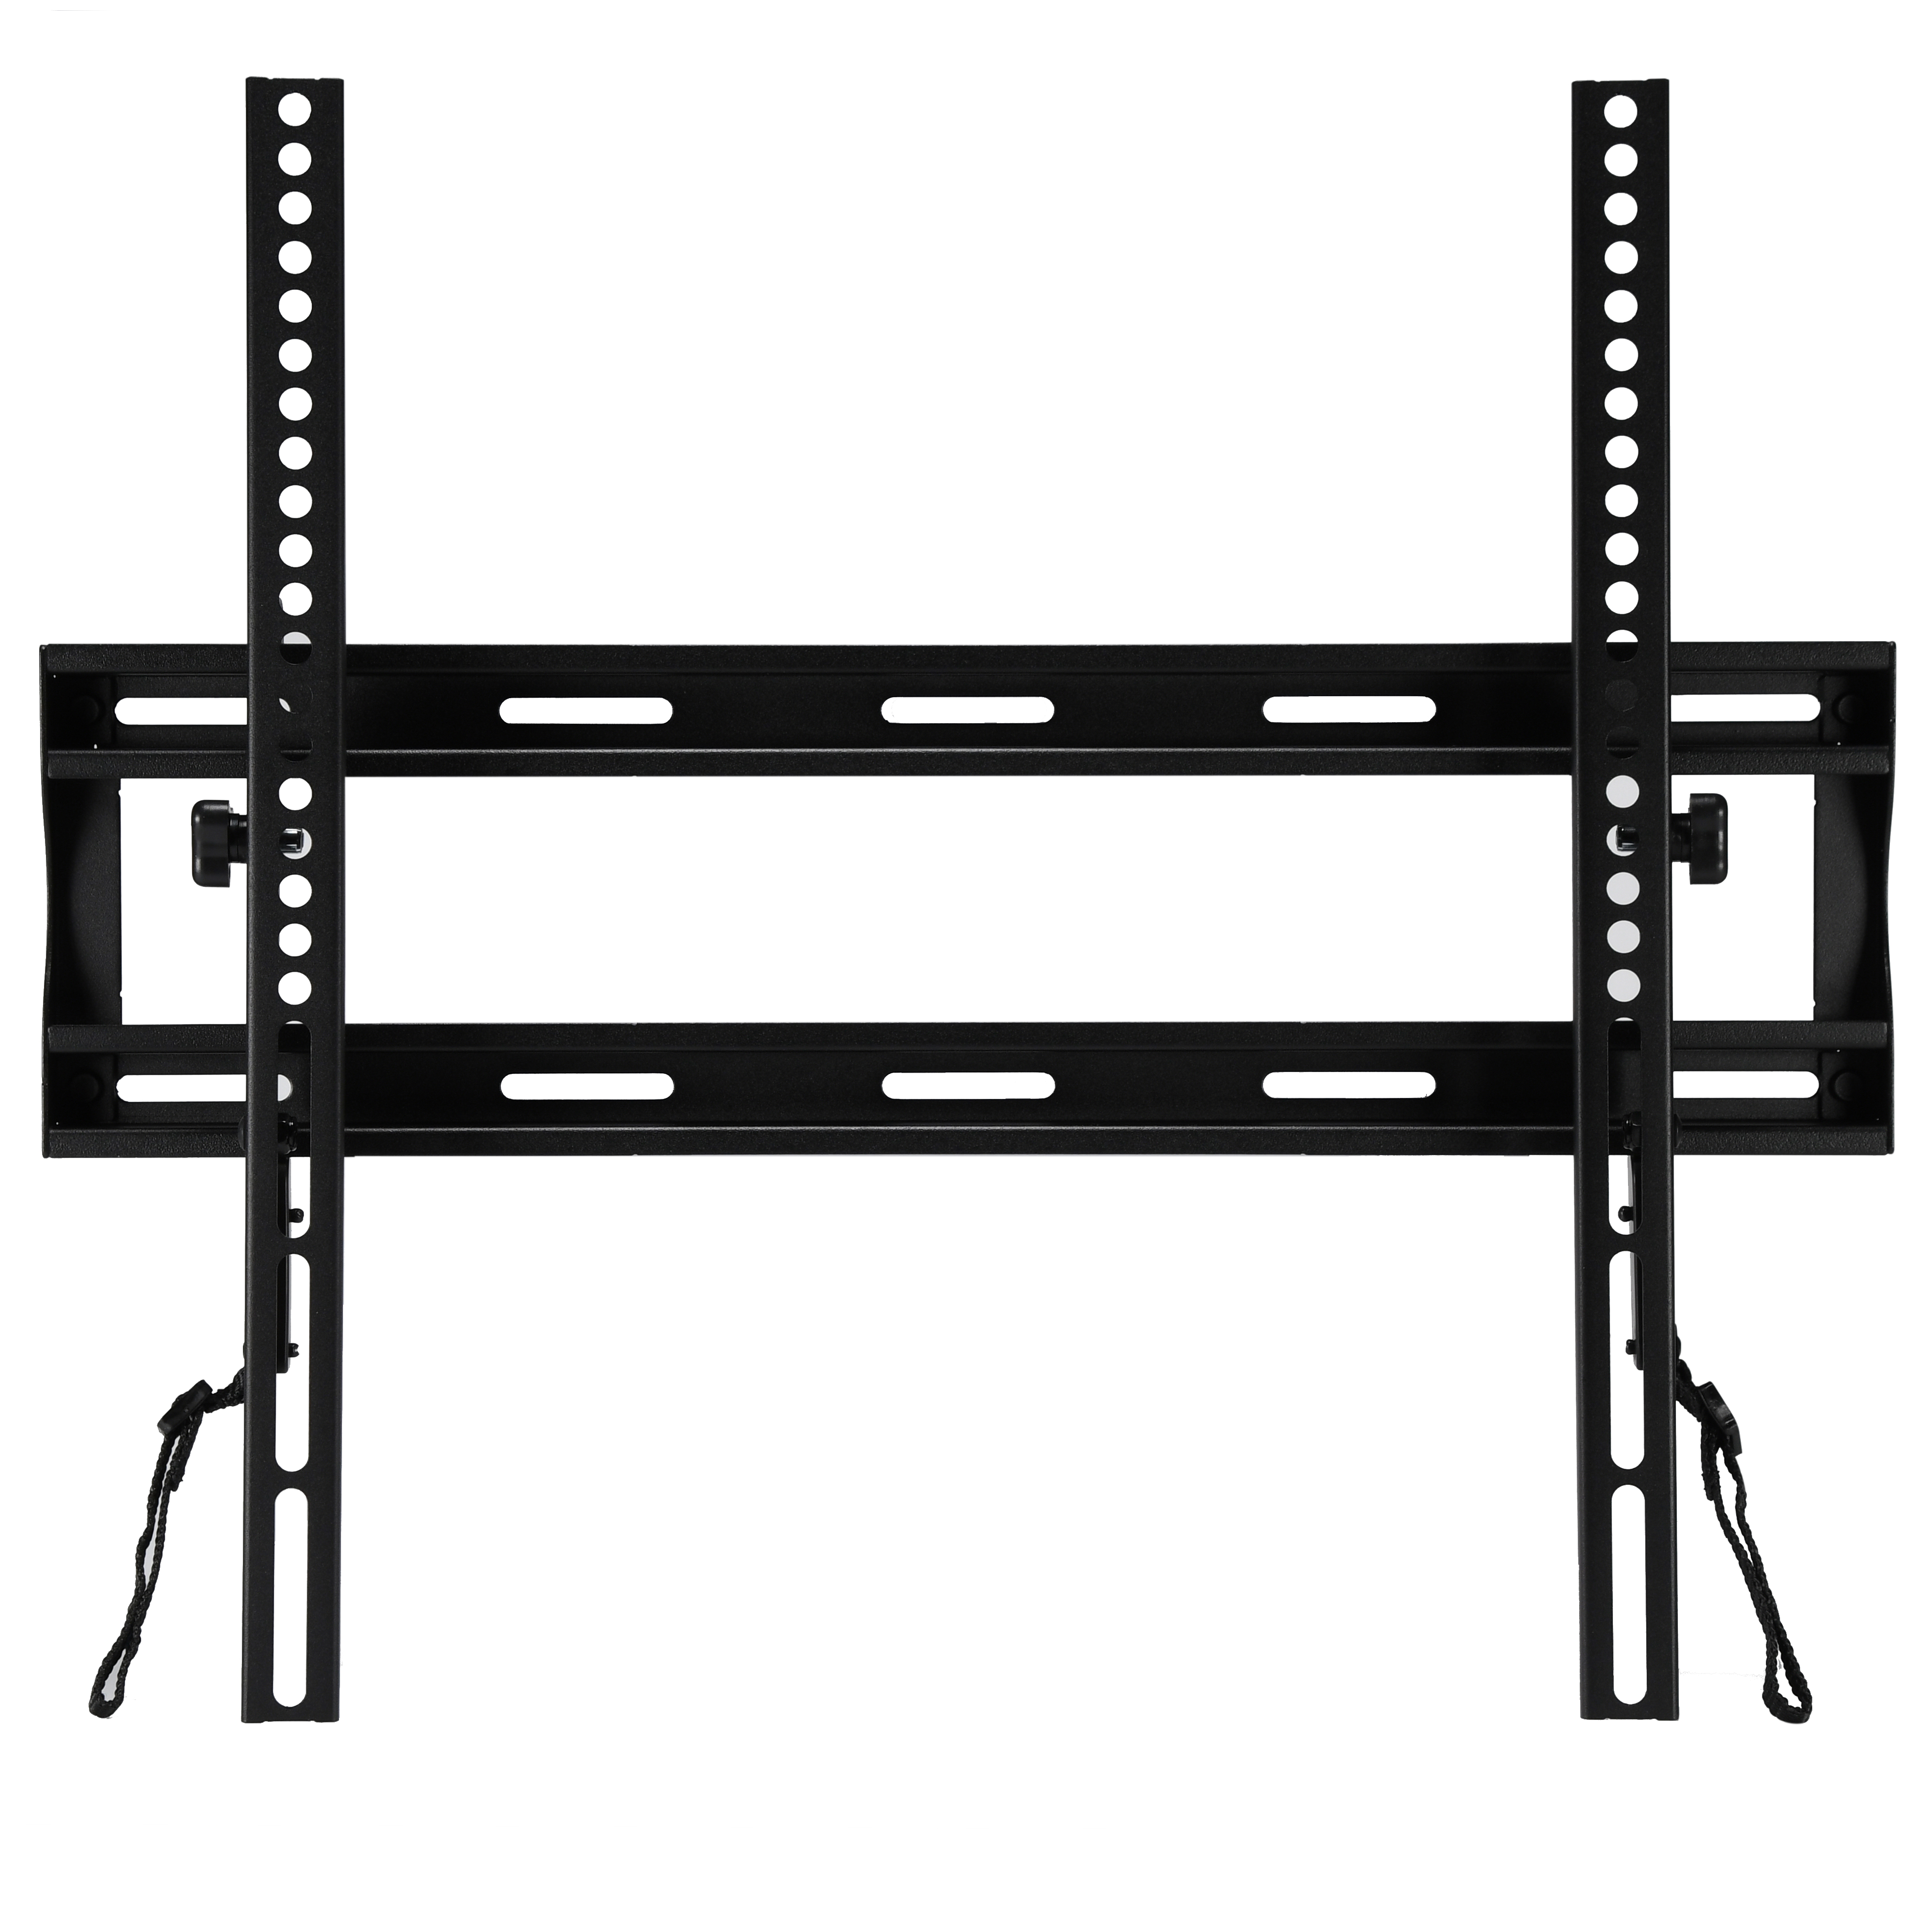 "ONN Medium Tilting TV Wall Mount For 32""-47"" TVs"